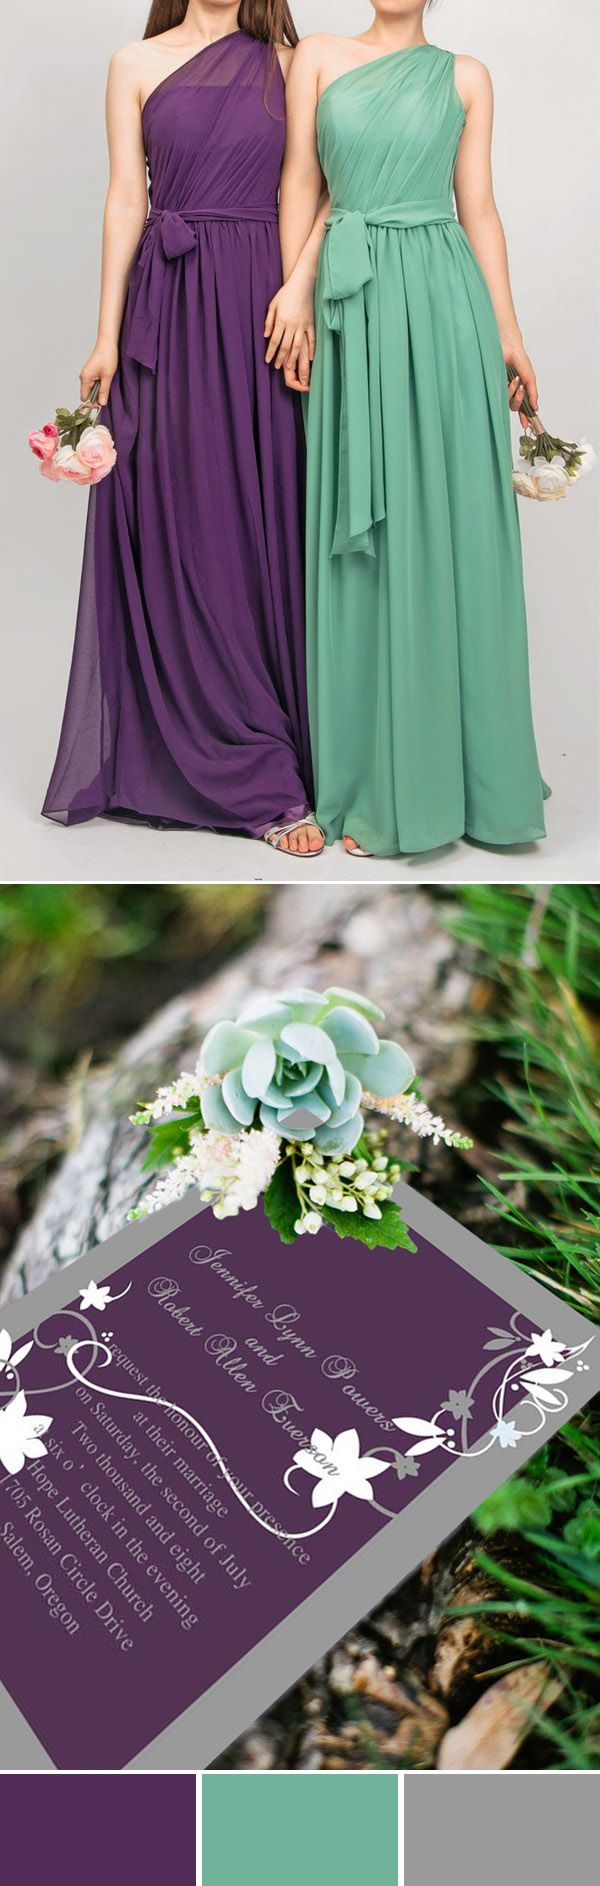 98 best Bridesmaid Dresses and More images on Pinterest | Bridal ...